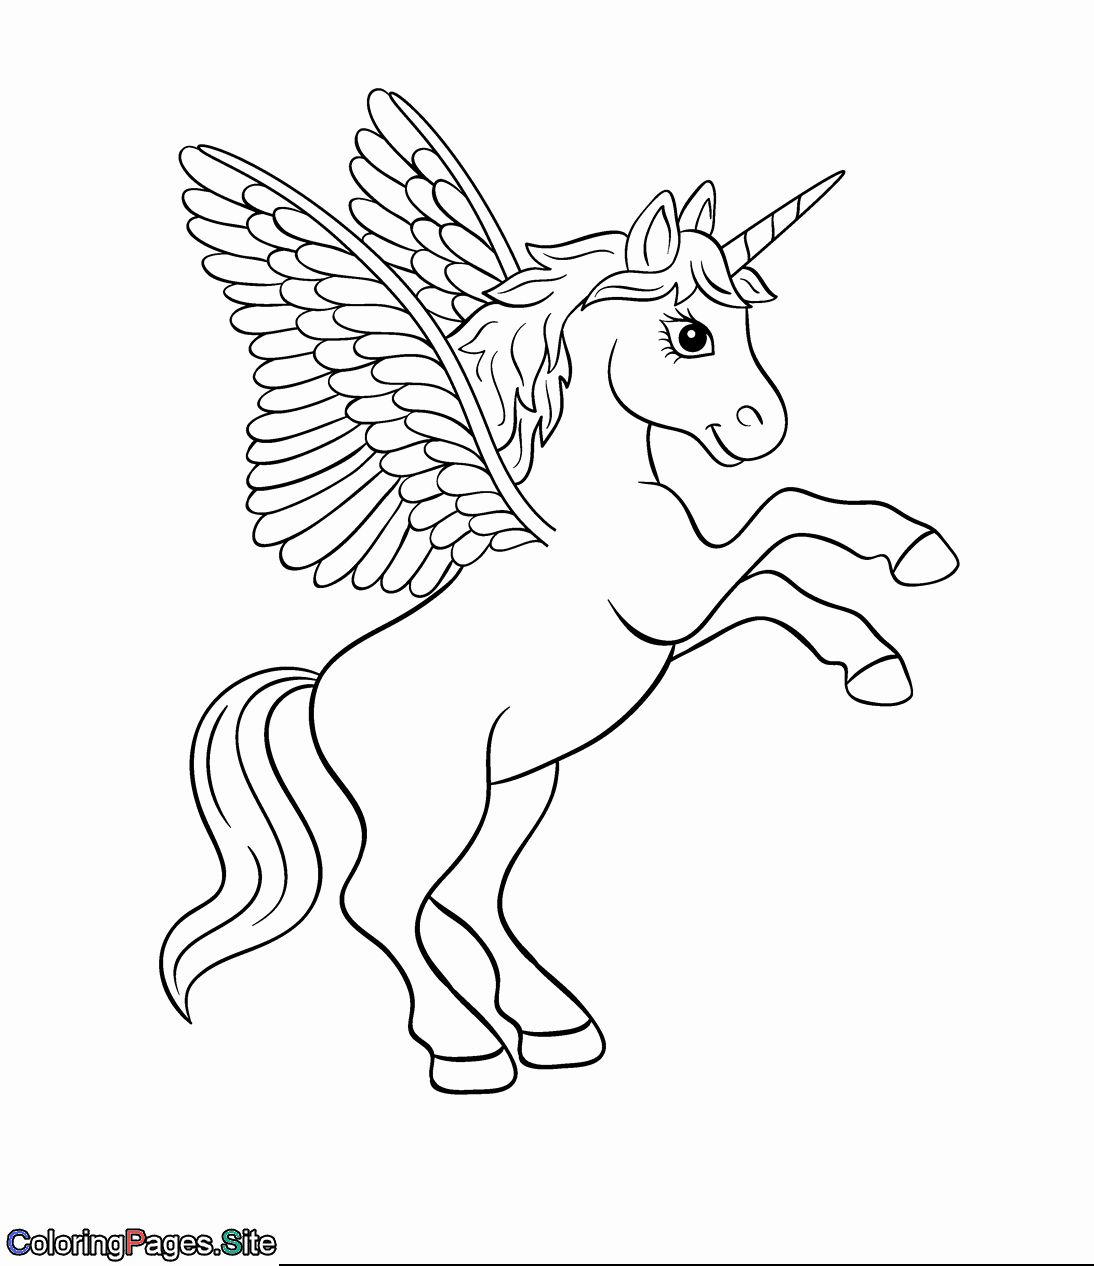 32 Unicorn With Wings Coloring Page In 2020 Unicorn Coloring Pages Pokemon Coloring Pages Unicorn Drawing